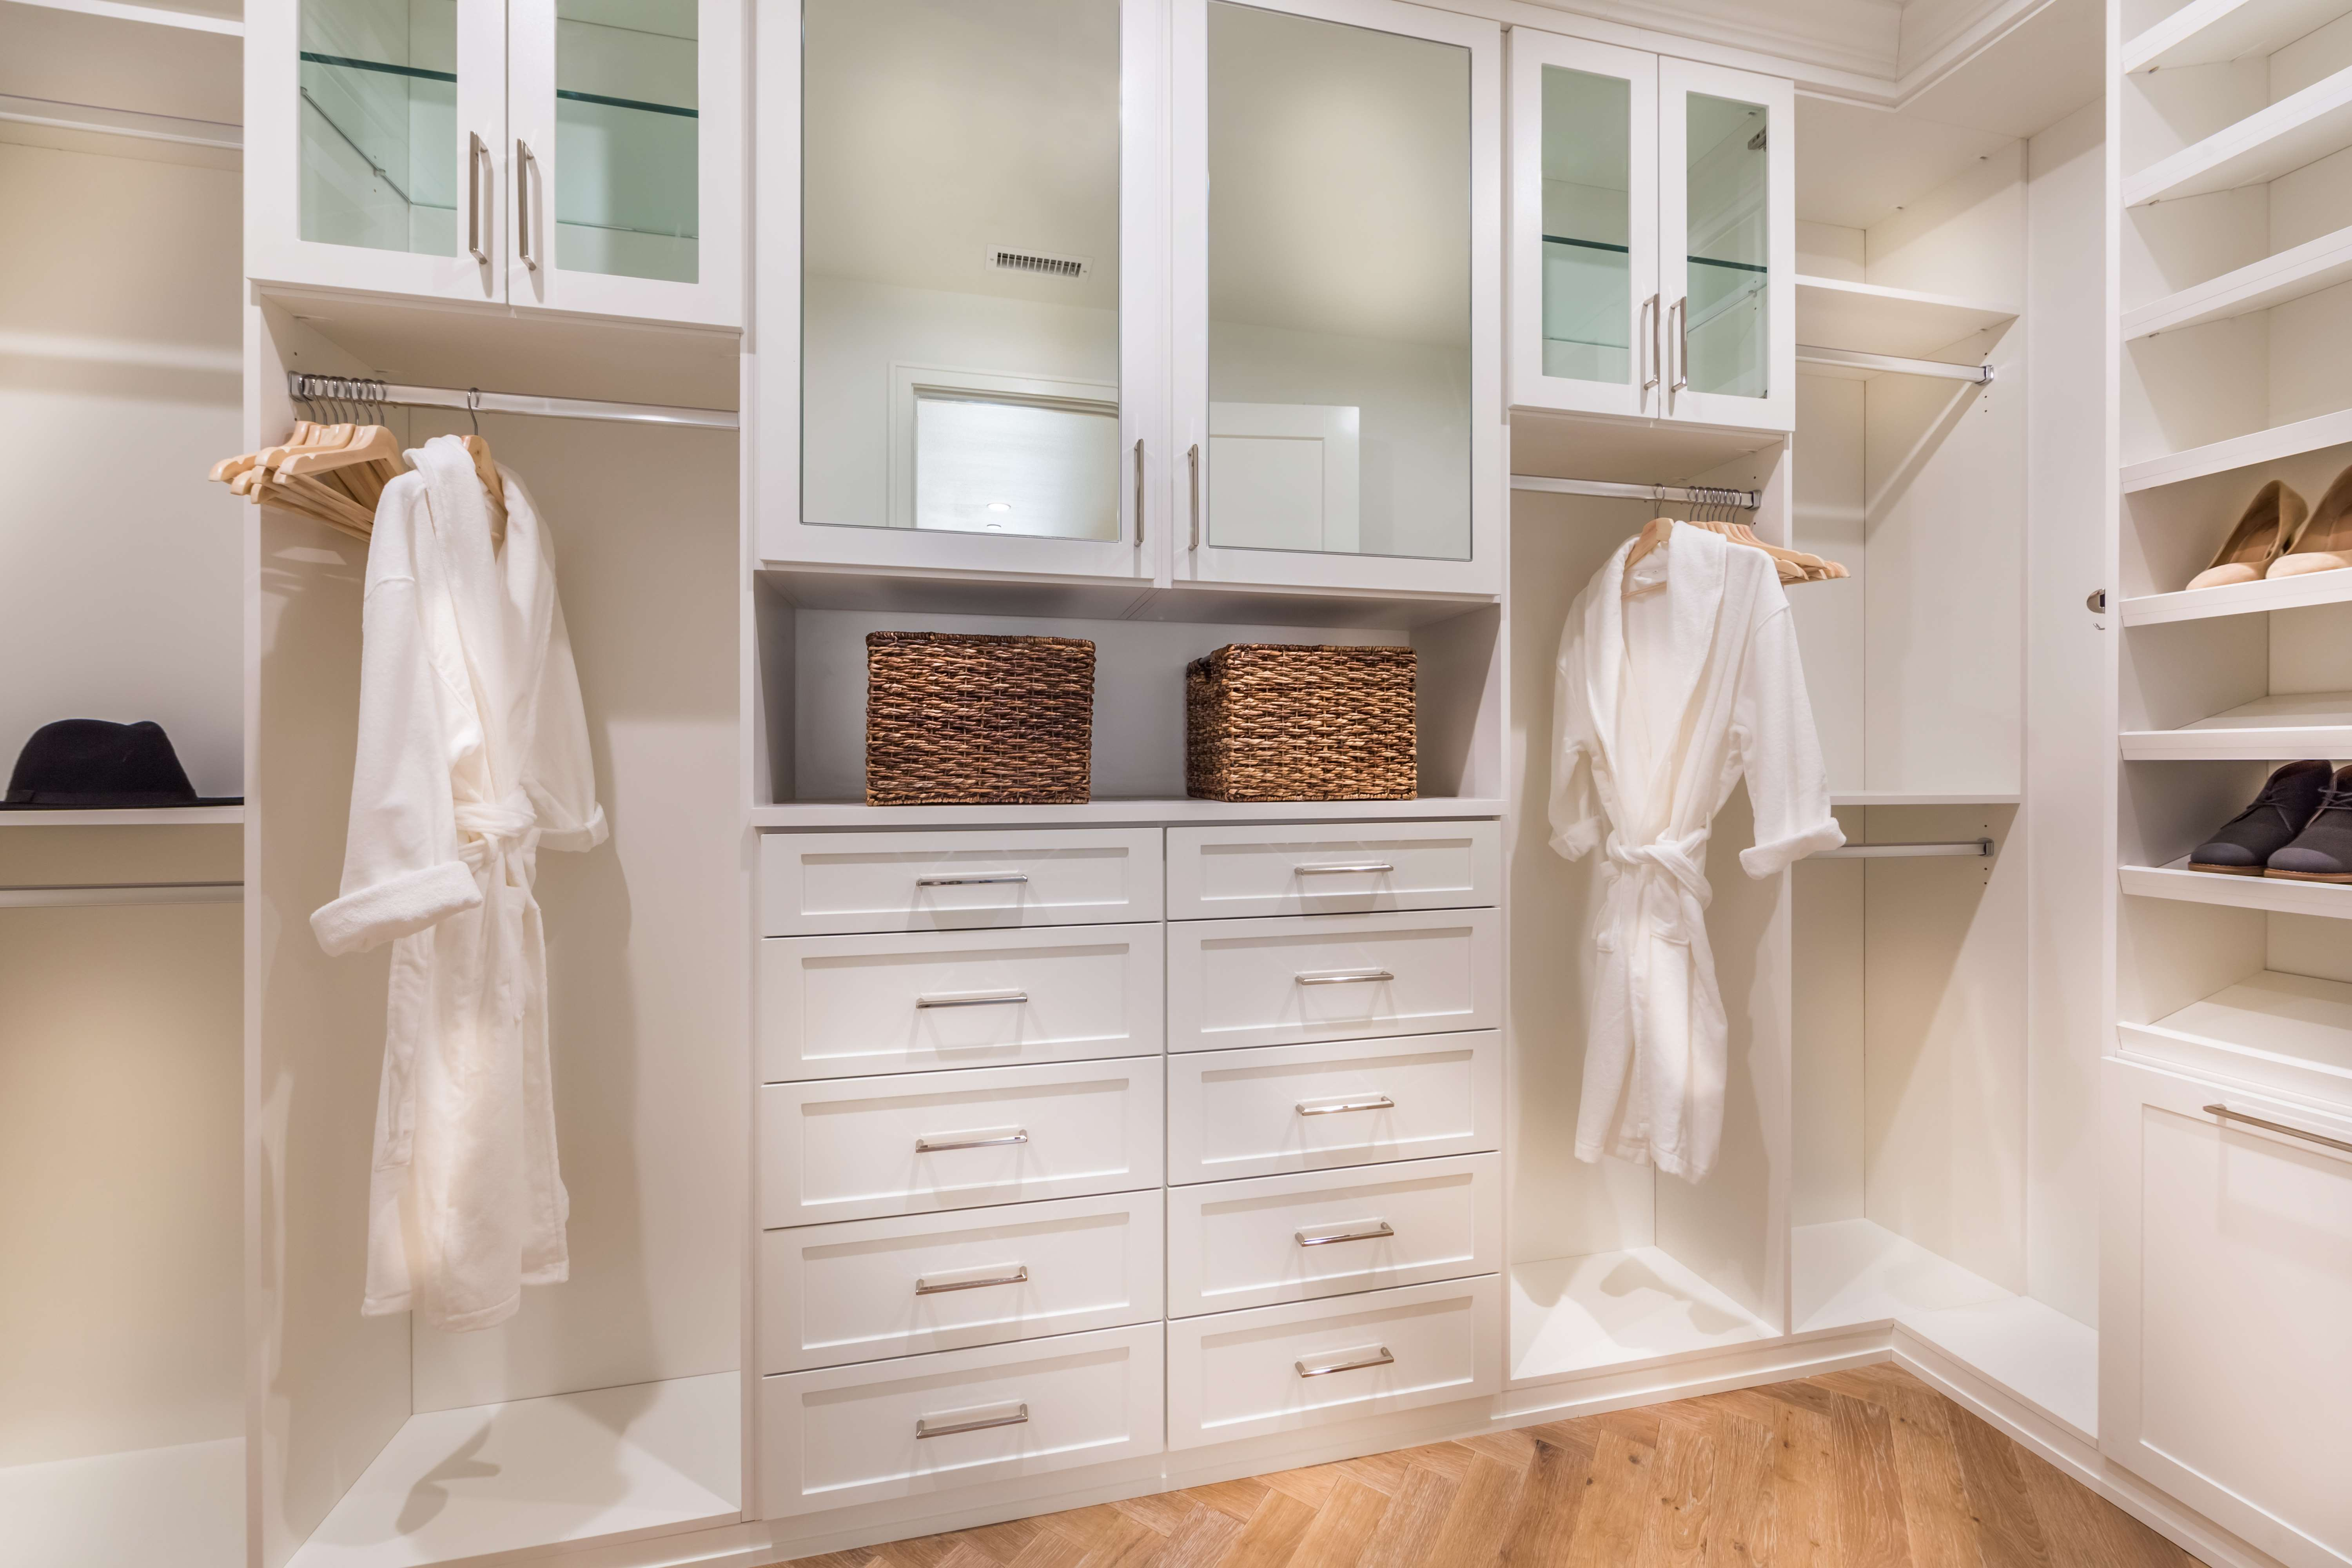 Master Closet at Terra Residence 2 in Irvine